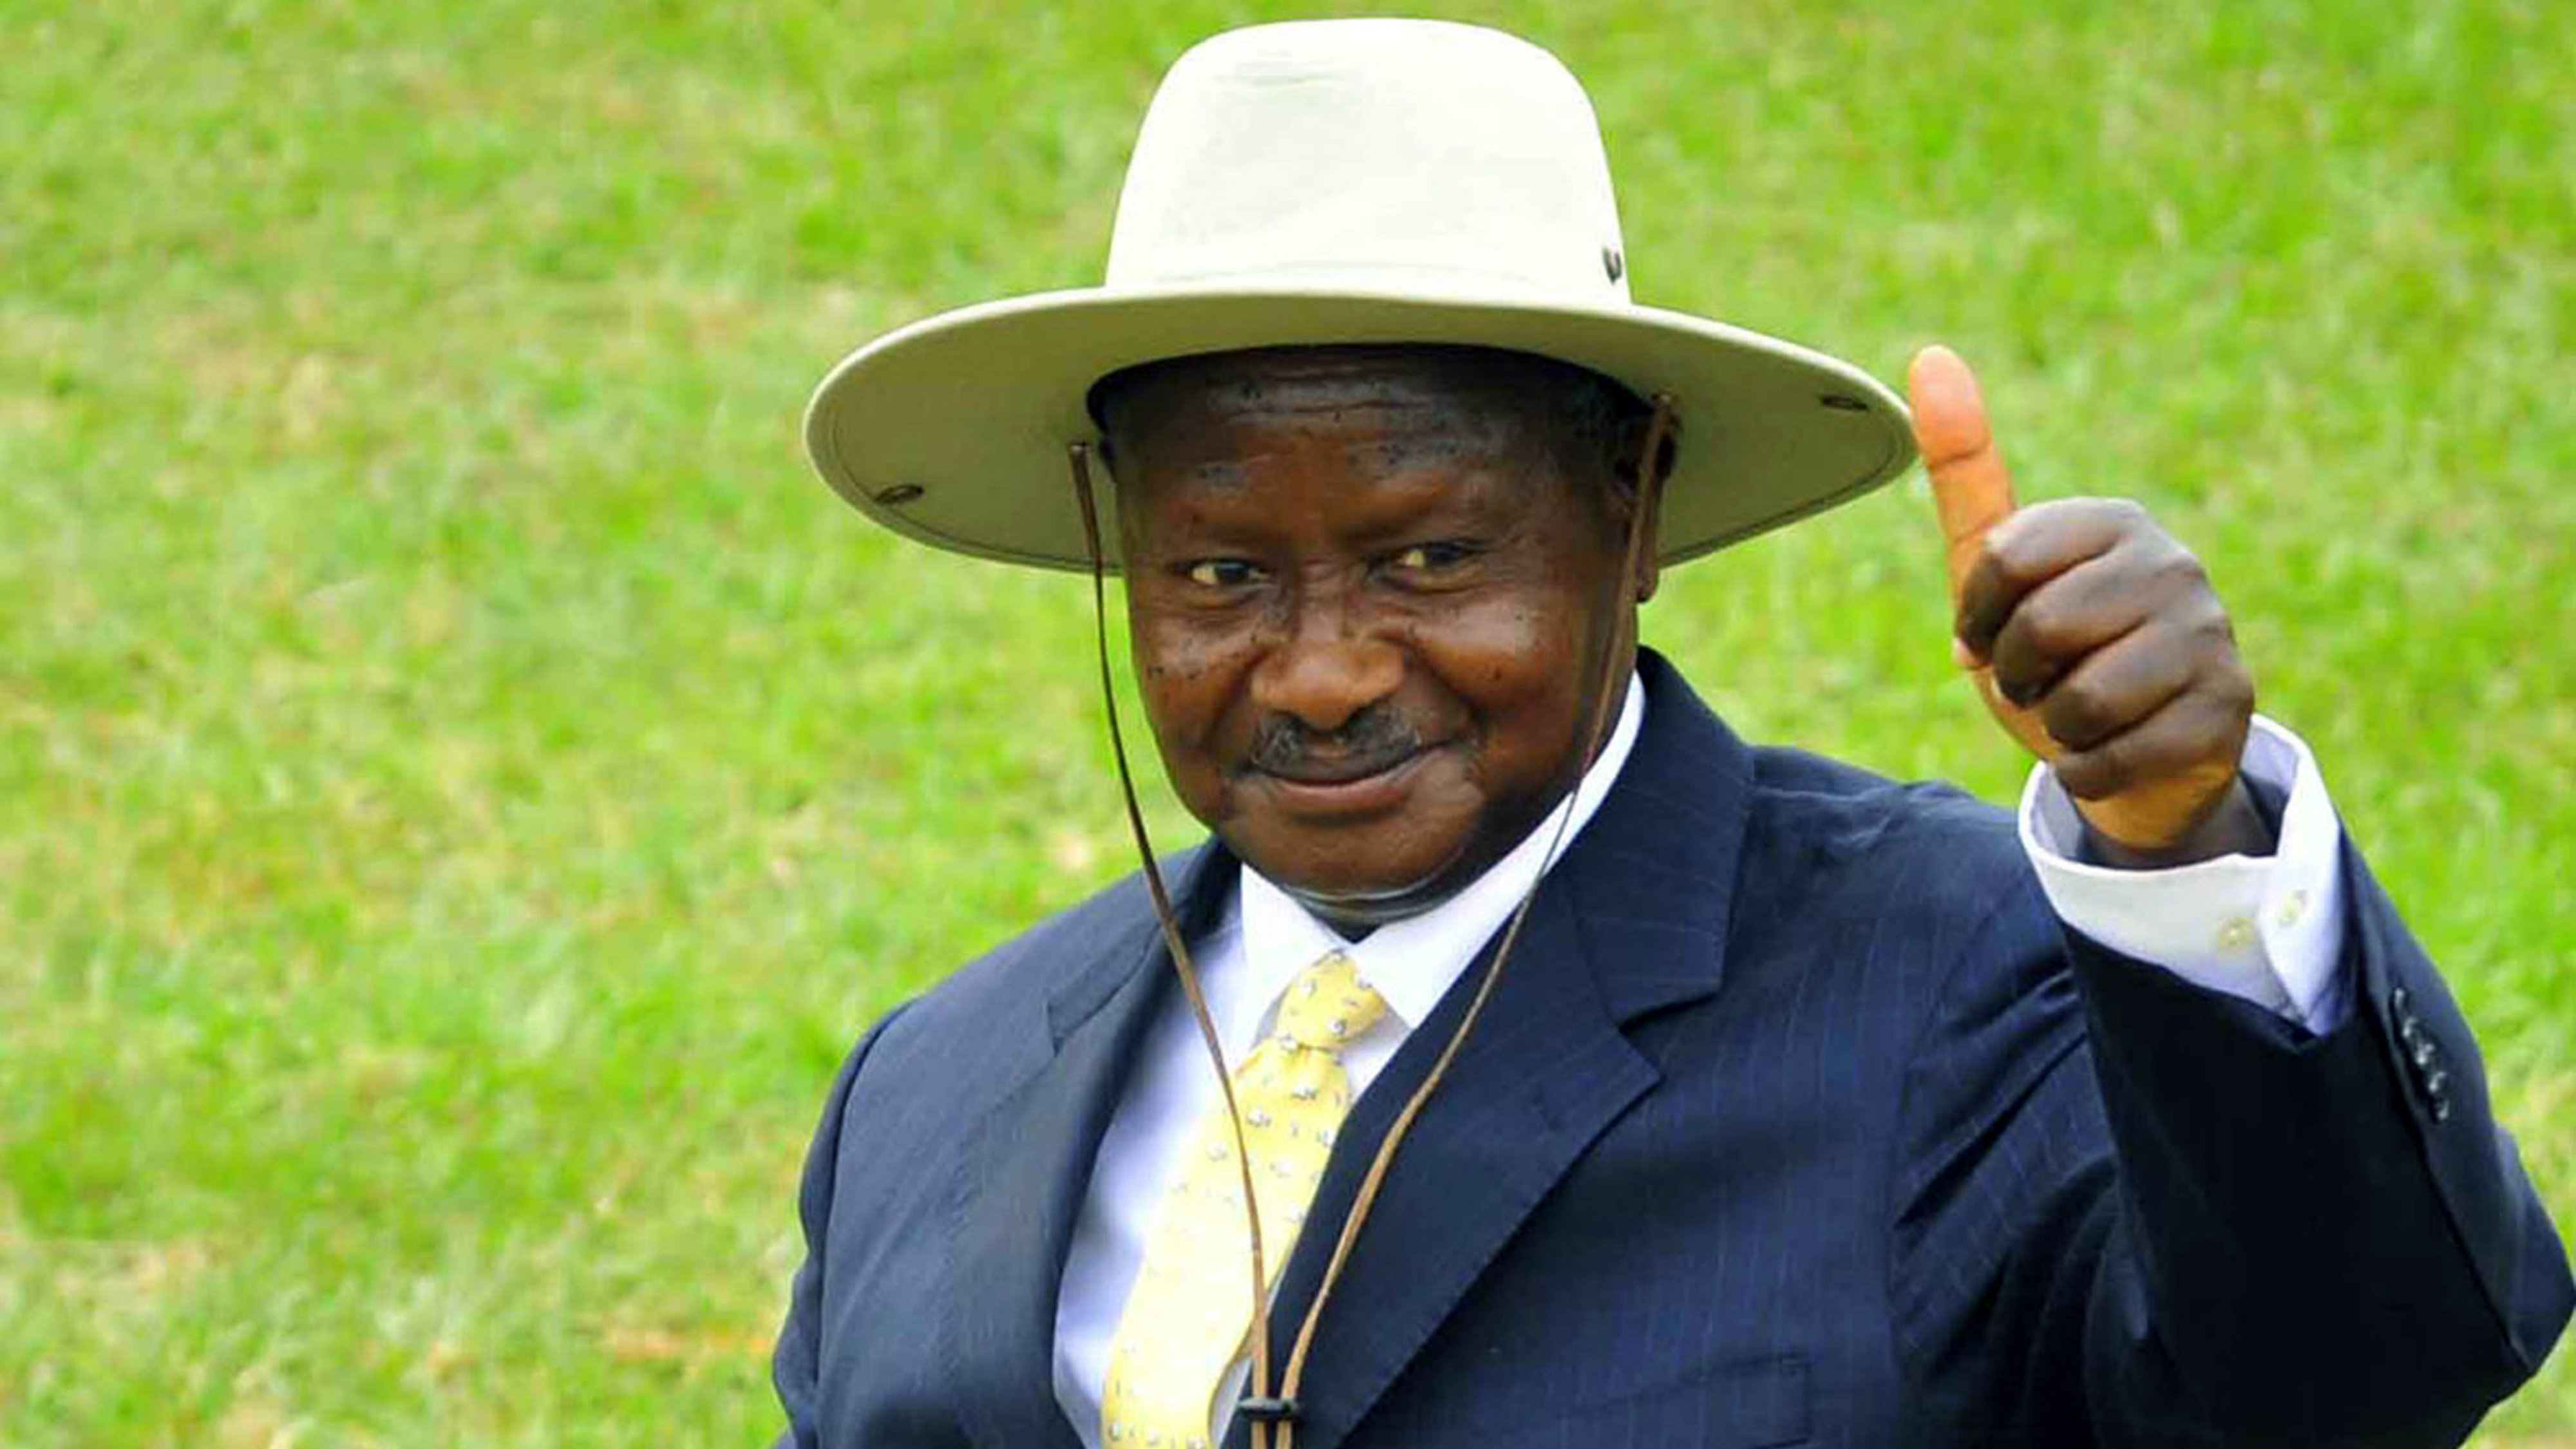 In this Saturday, Feb. 12, 2011 file photo, Uganda President Yoweri Museveni campaigns in Uganda's capital Kampala. Officials with Uganda's ruling party want to remove the age limit on the presidency so long-time President Yoweri Museveni can run again, a spokesman said Wednesday, Aug. 3, 2016.